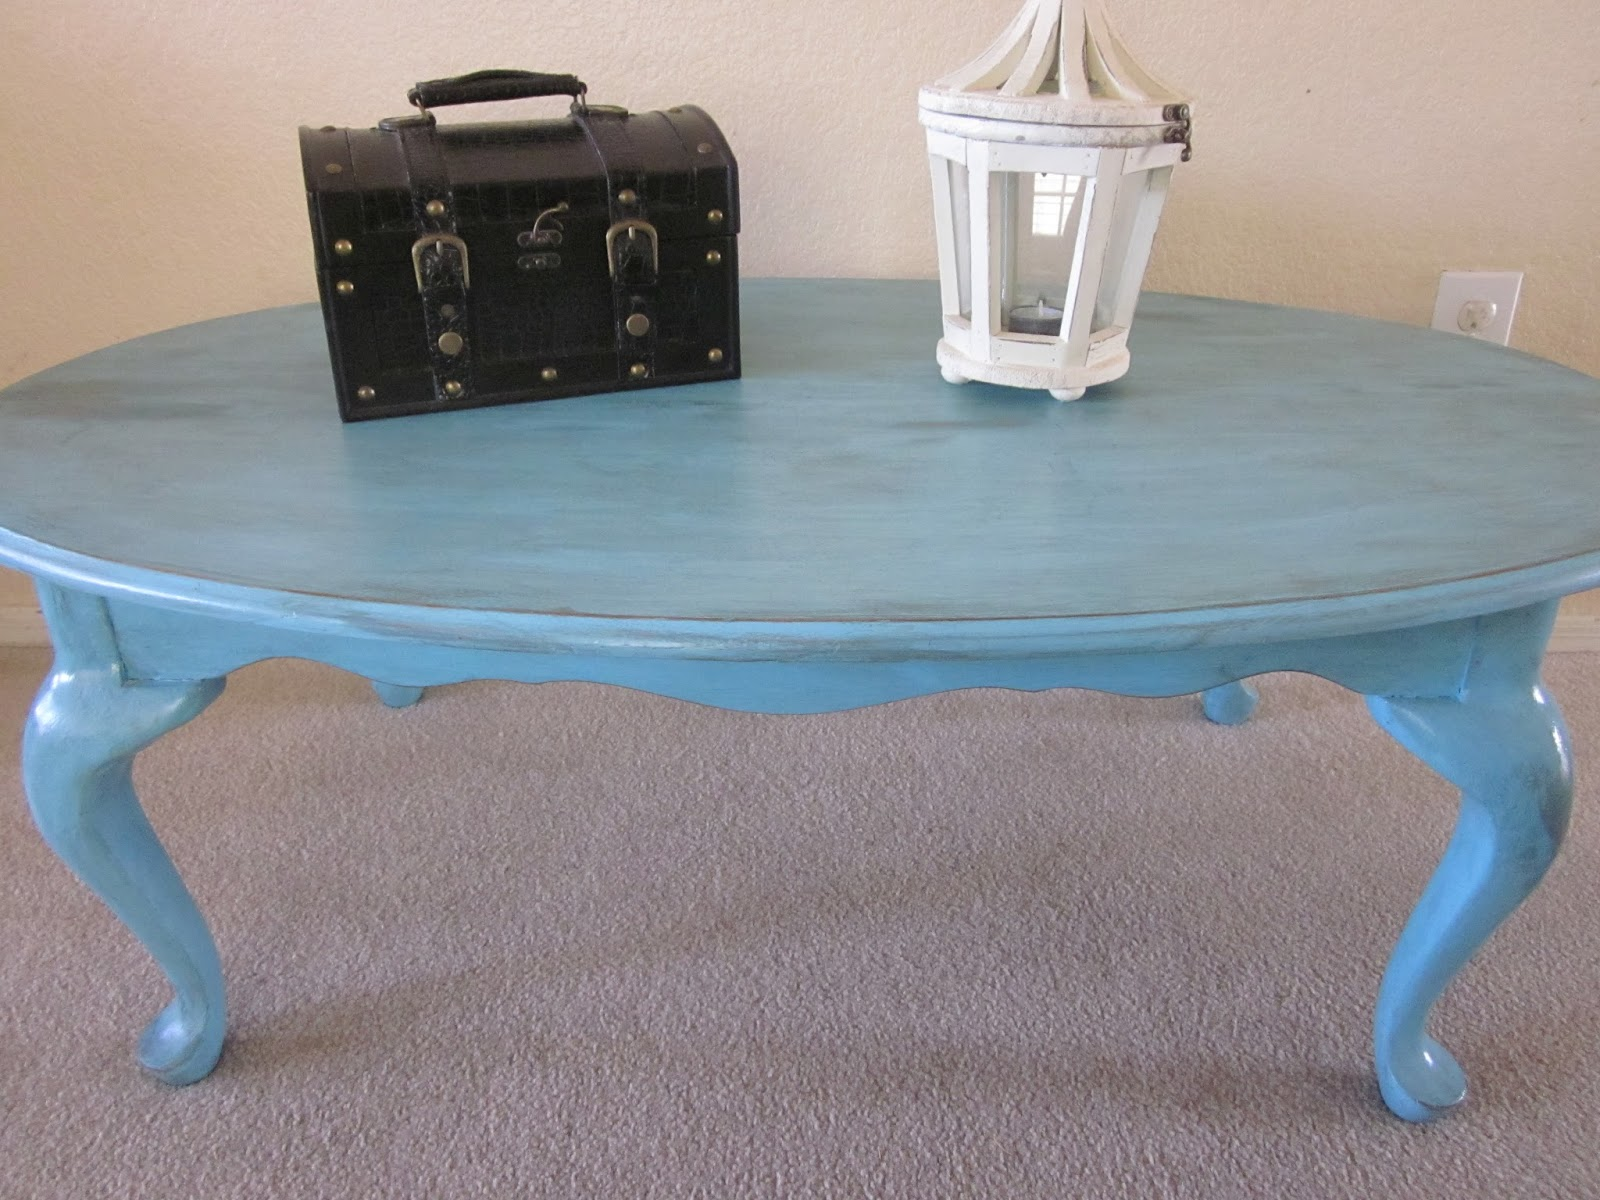 my rustic relics: blue oval coffee table